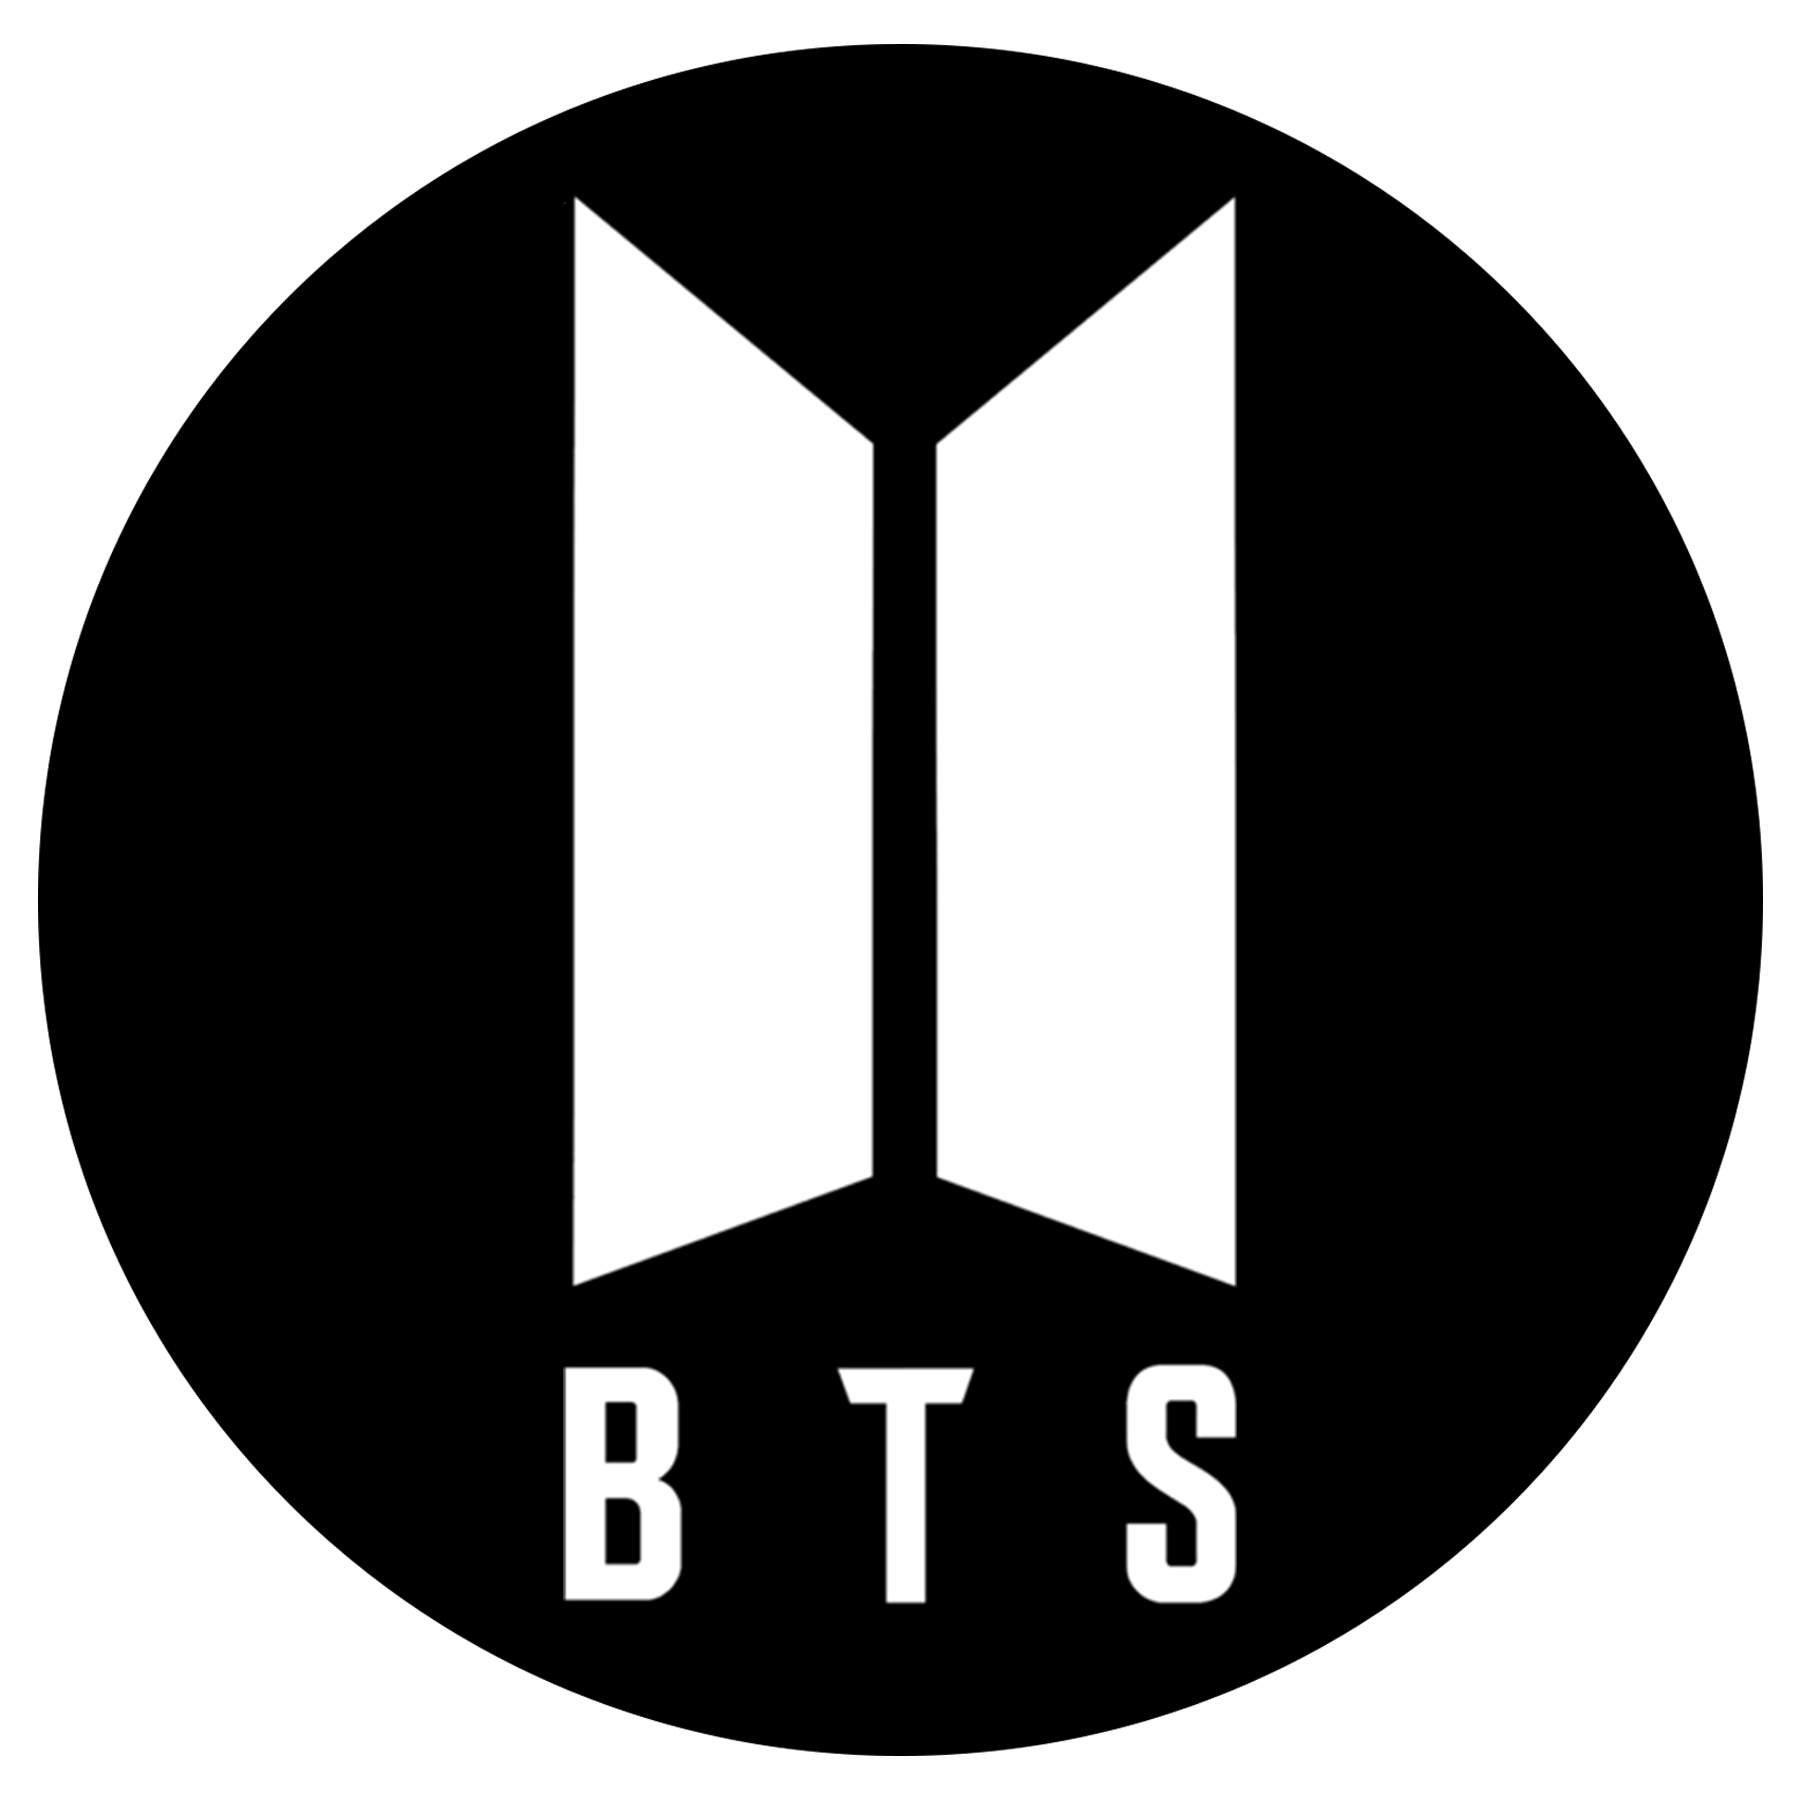 File bts logo wikimedia. .png png png royalty free stock